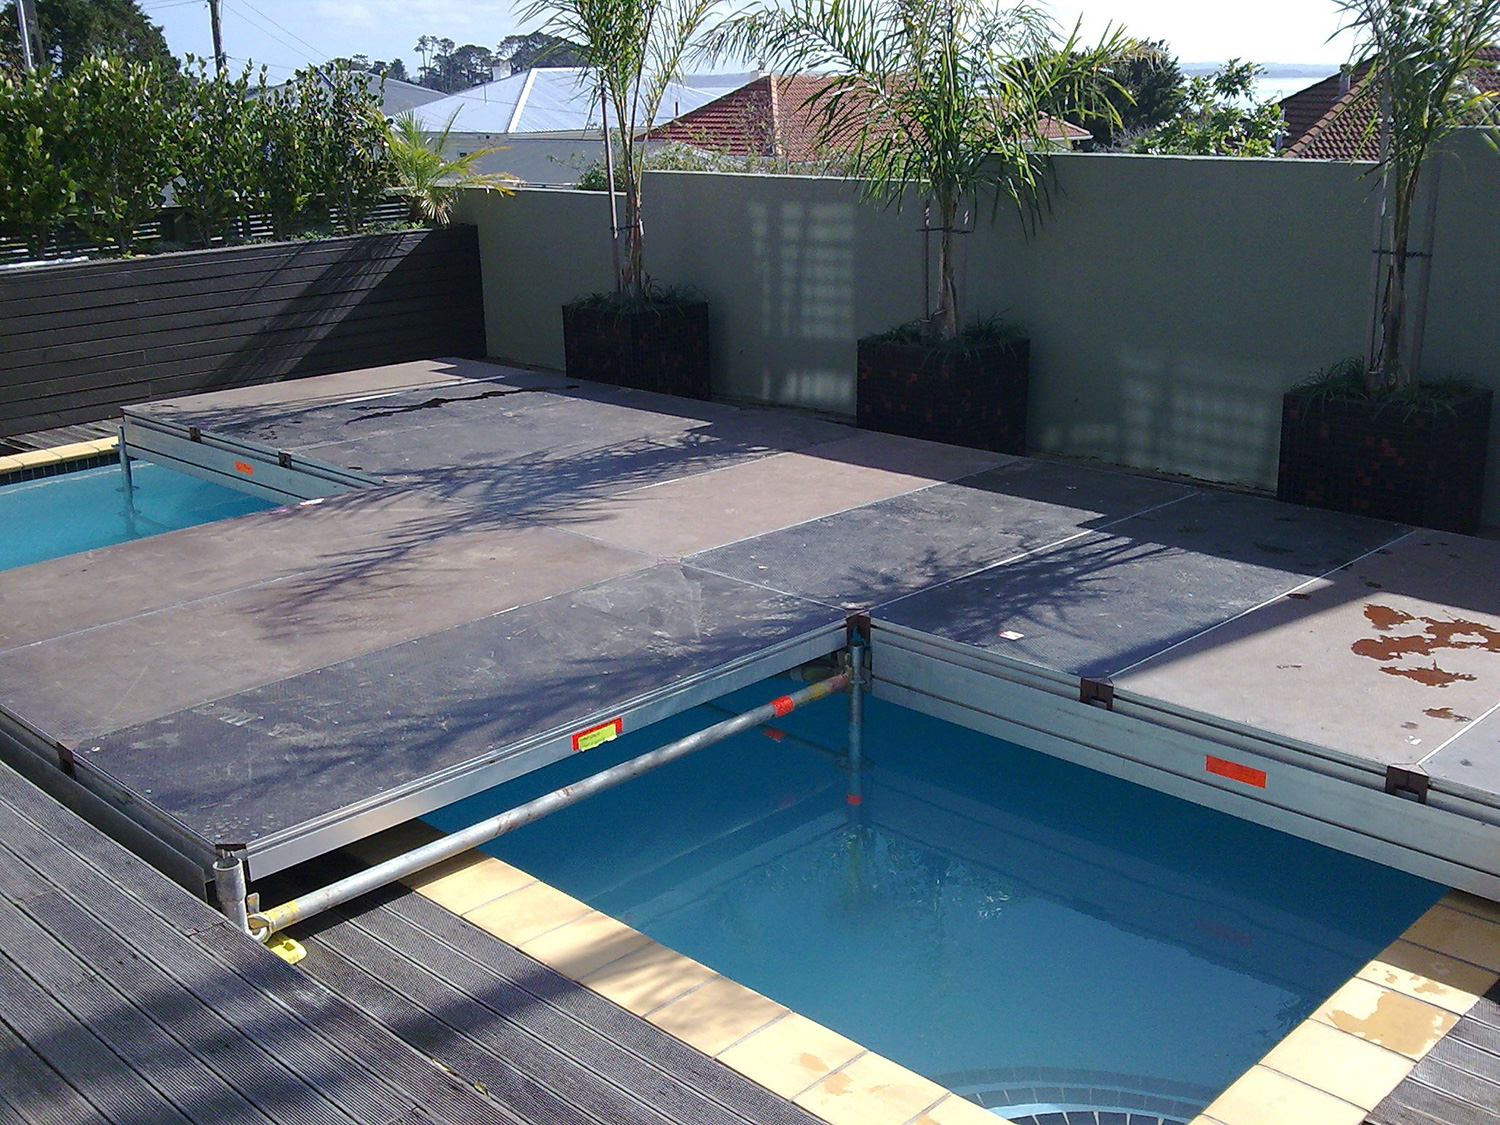 Stage/Catwalk Over Pool